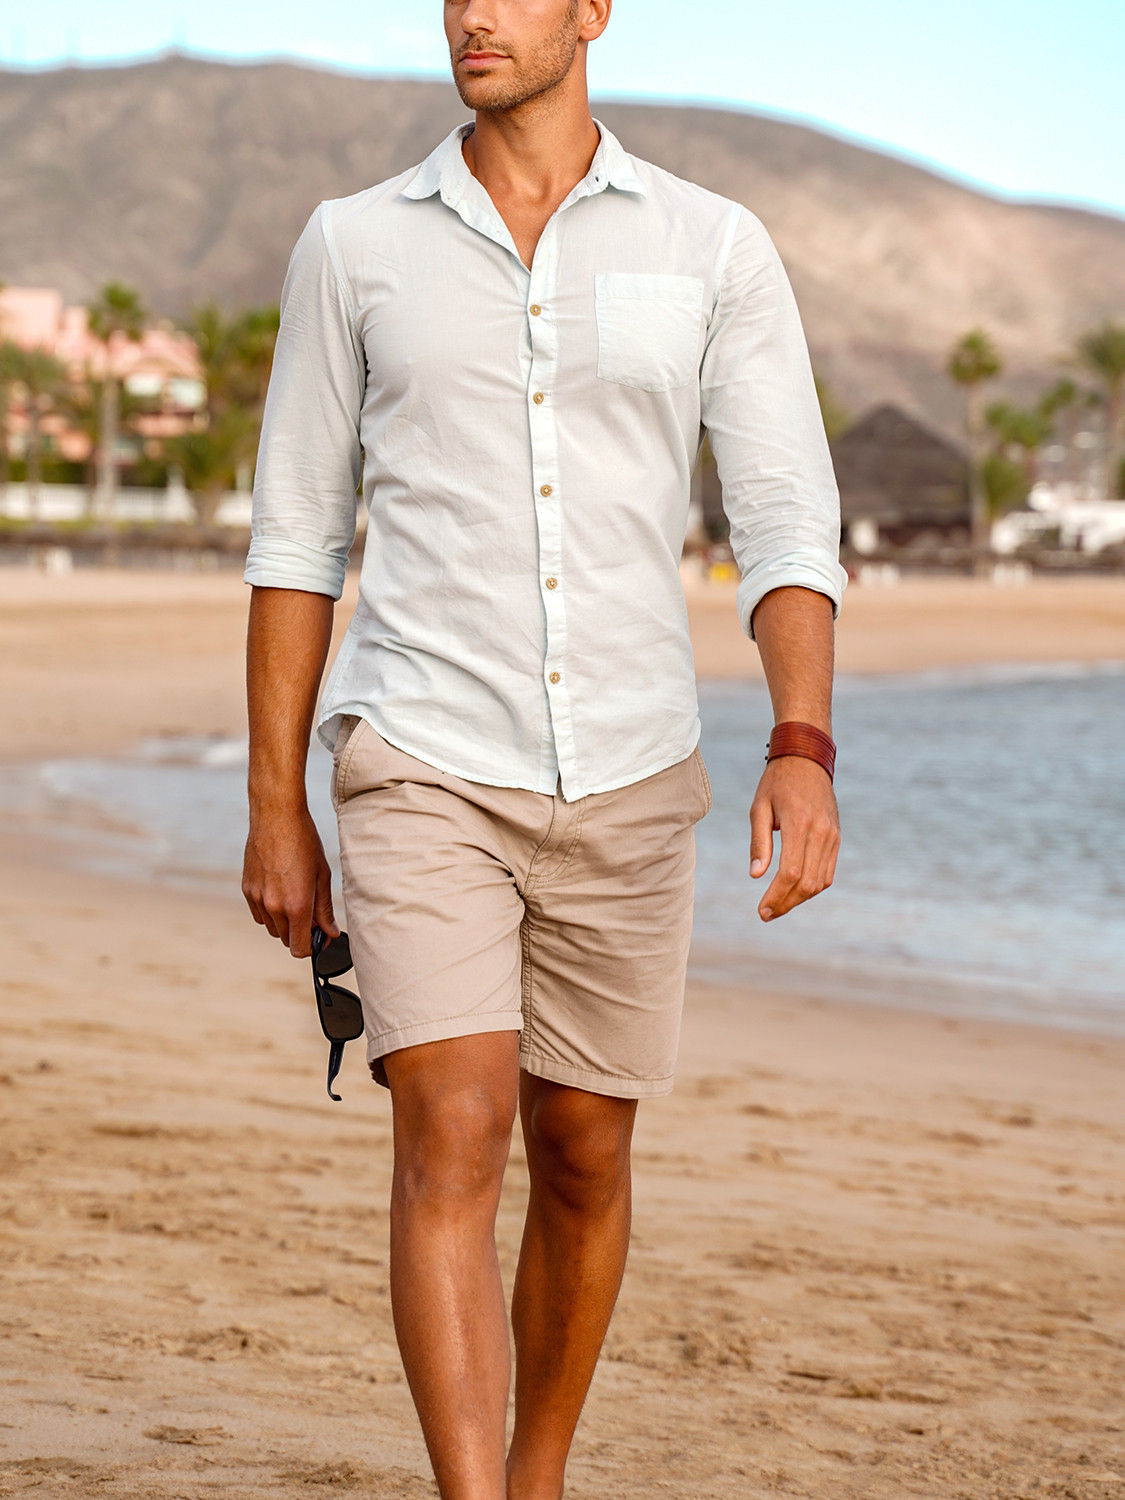 Men's outfit idea for 2021 with blue linen shirt, neutral cotton shorts, brown boat shoes. Suitable for summer.